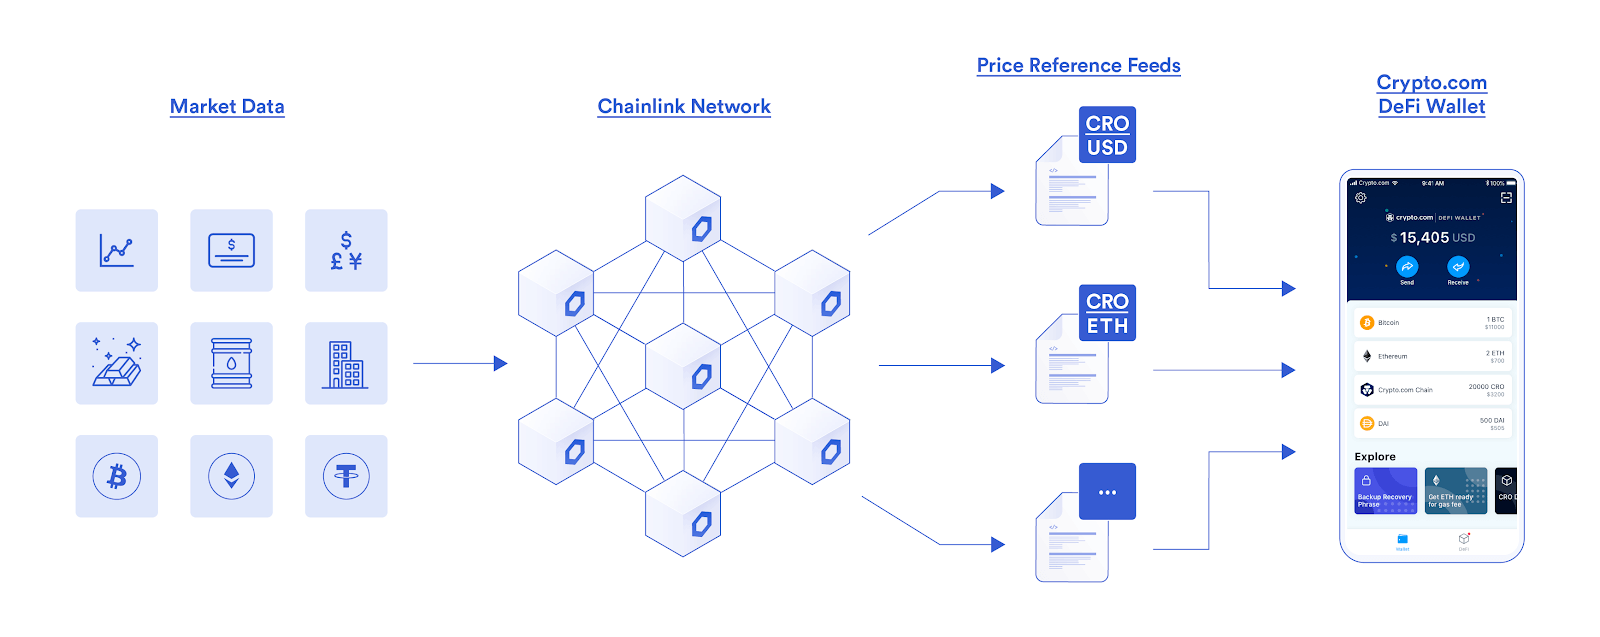 Chainlink oracles will now power Crypto